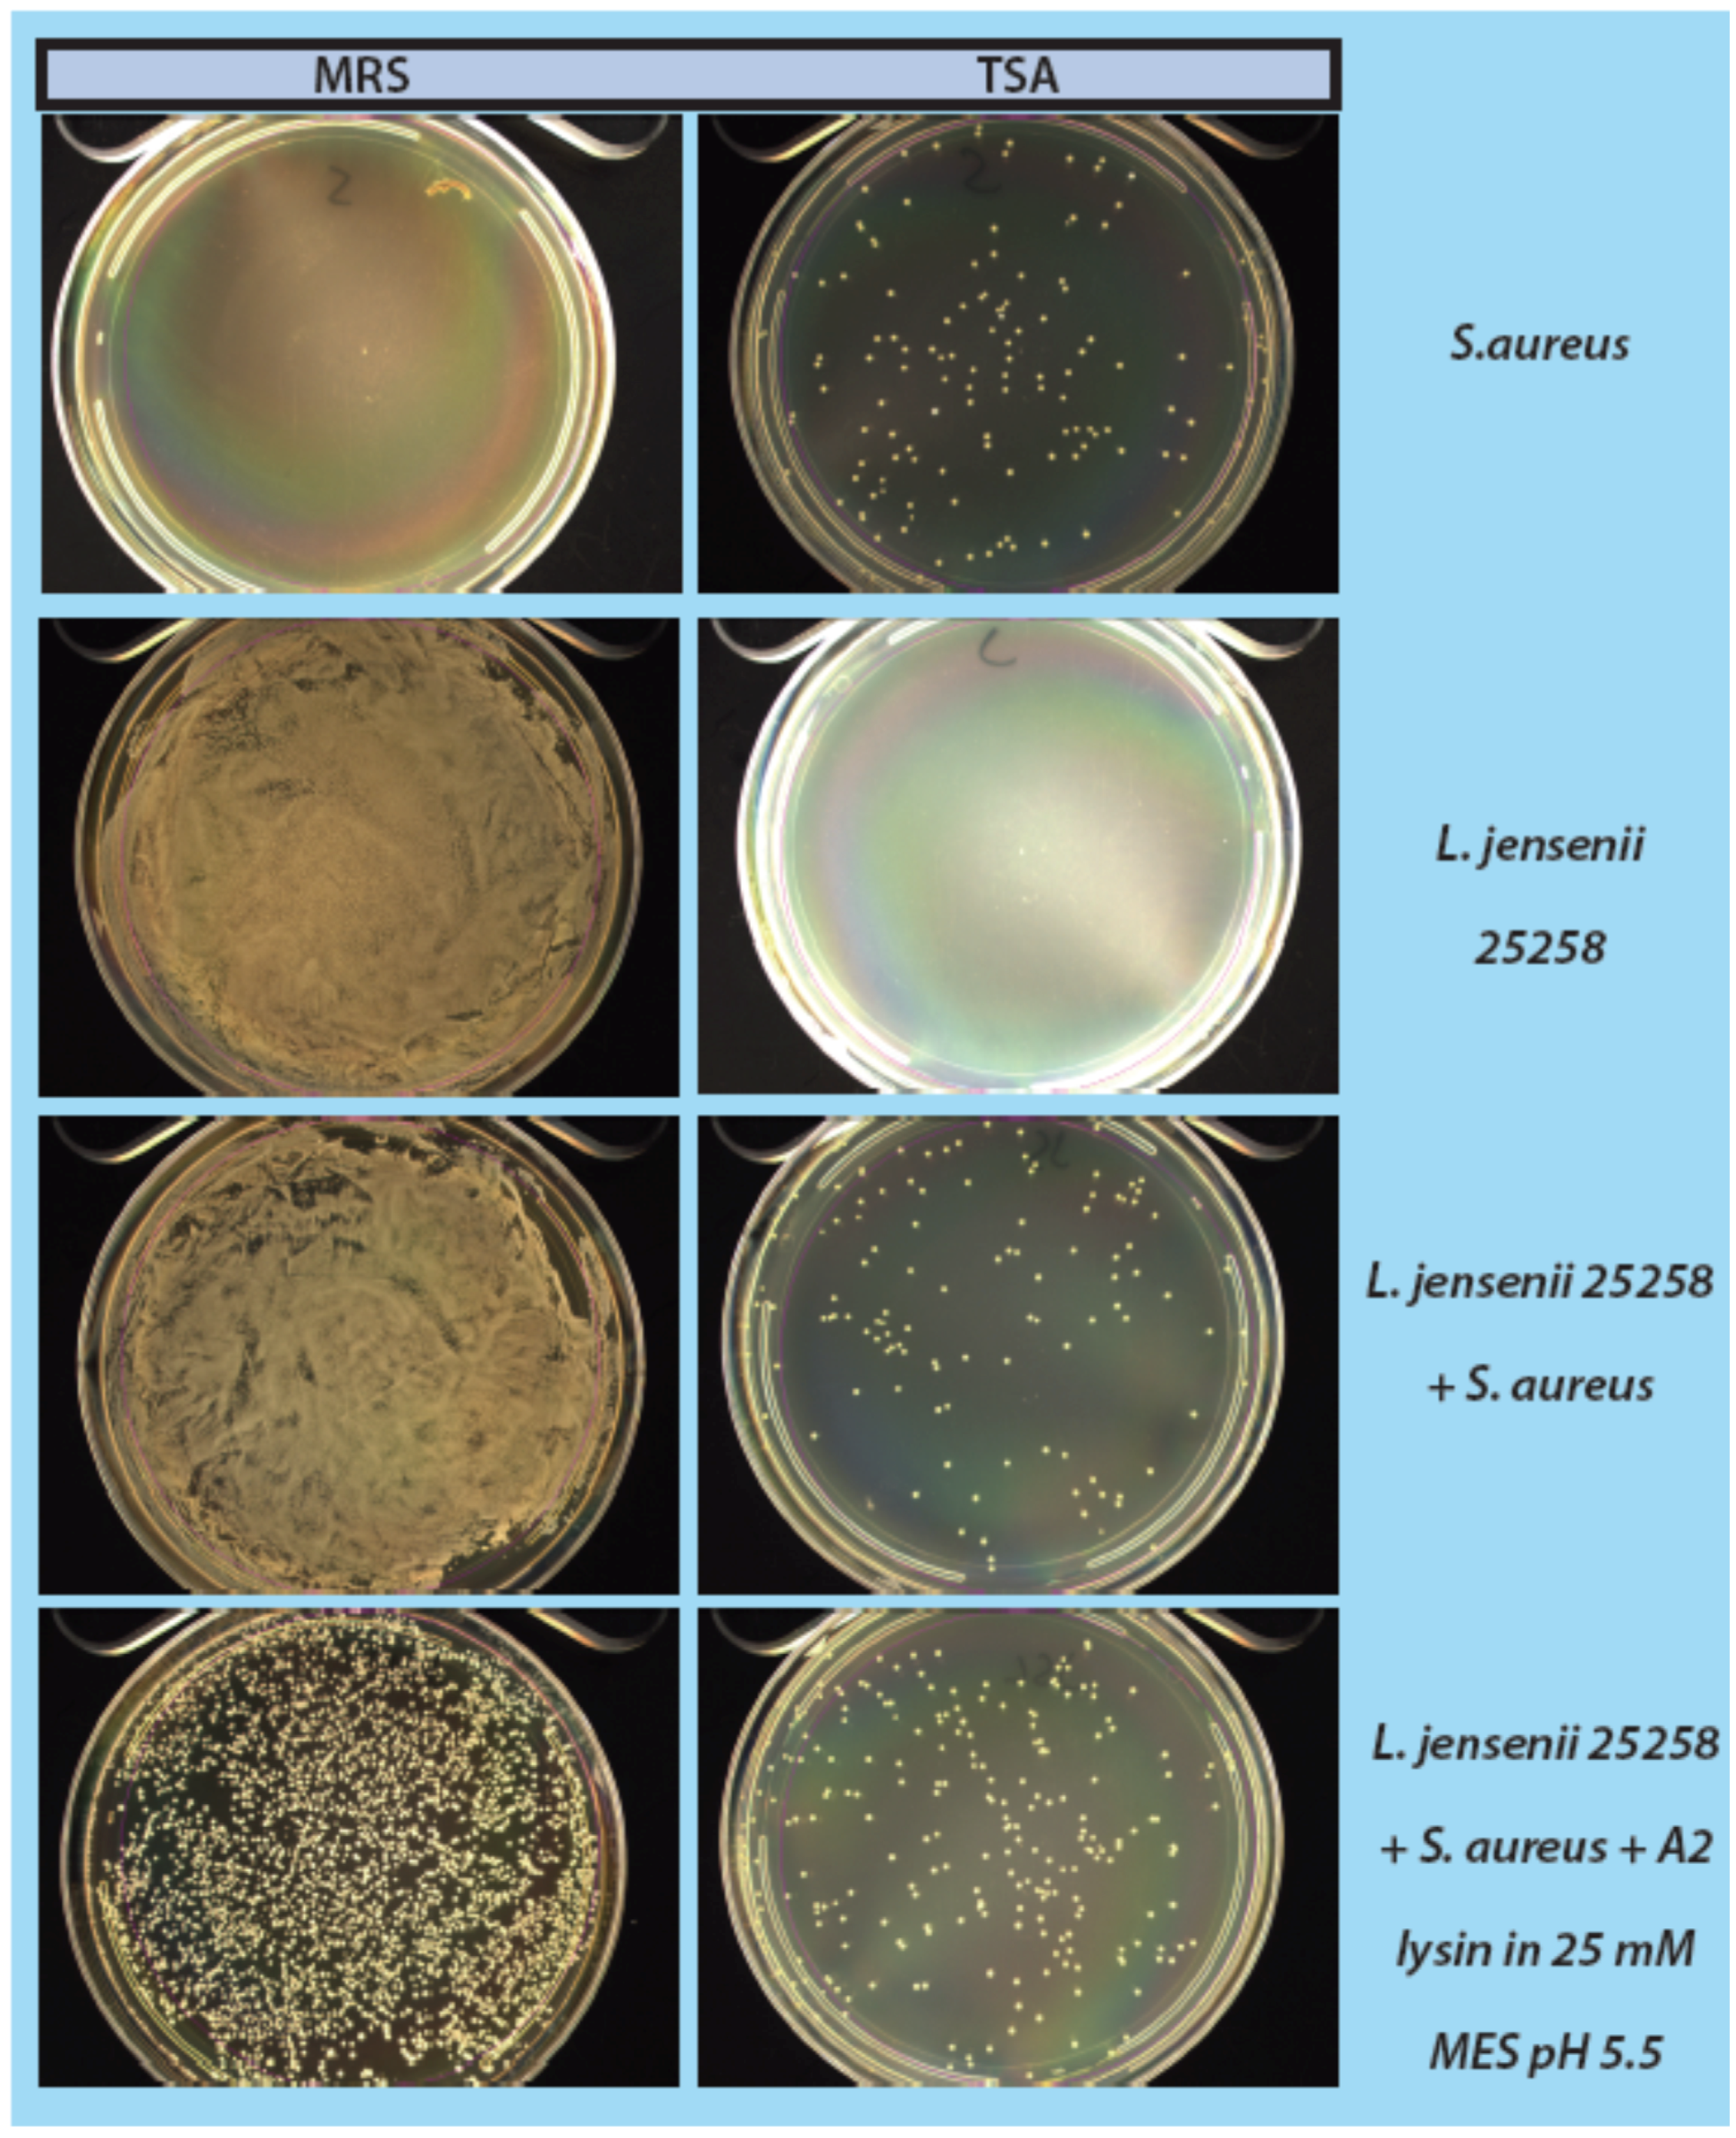 mrs broth l acidophilus Screening of lactobacilli derive d from chicken feces and partial characterization of lactobacillus acidophilus a12 as animal probiotics lee mrs broth (difco laboratories, detroit at 4,000 ×g for 10 min at 4o c l acidophilus a12 was then suspended in mrs broth containing 1% (w/v.